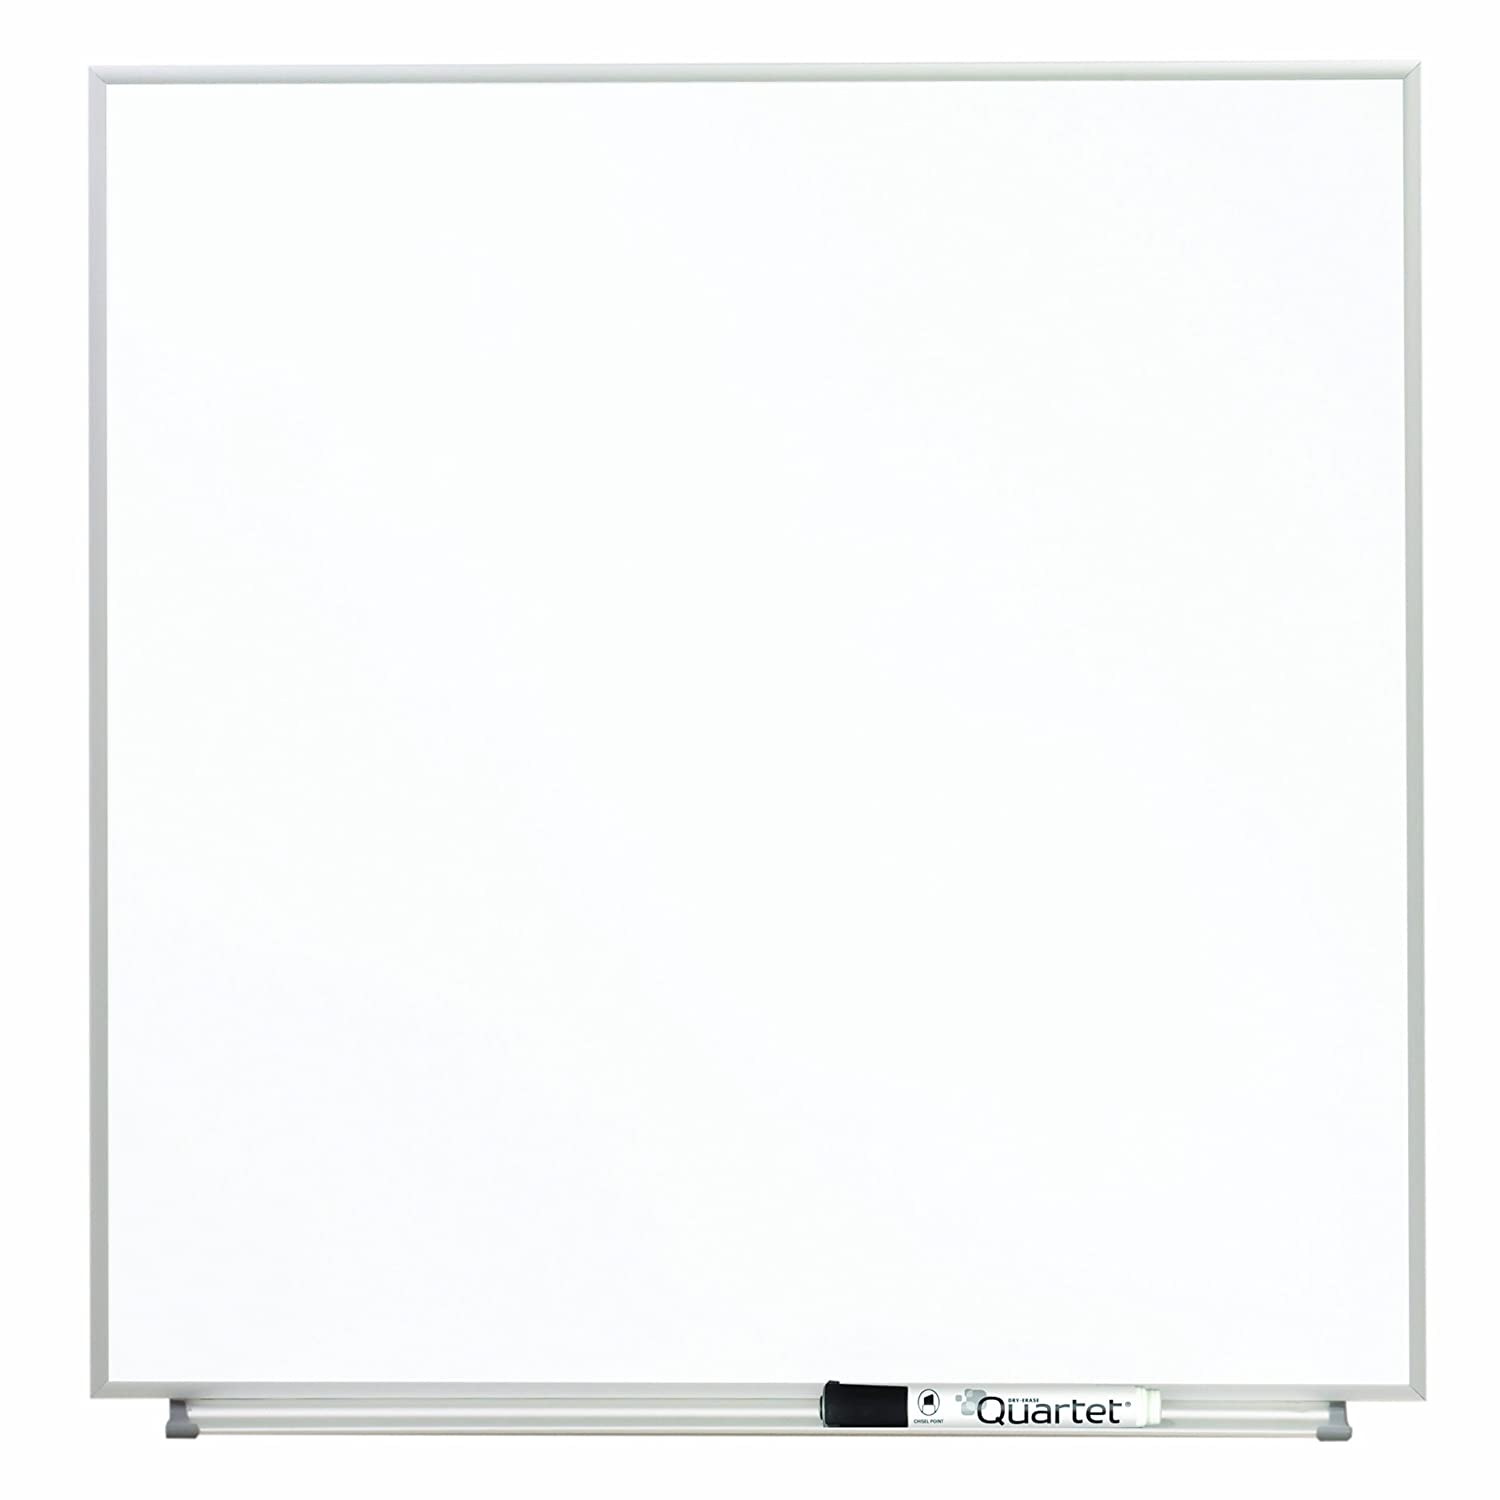 Quartet Matrix Modular Magnetic Whiteboard with Tray, Aluminum Frame, Includes Marker and Magnets, 23 x 16 Inches (M2316) ACCO Brands Canada Inc.